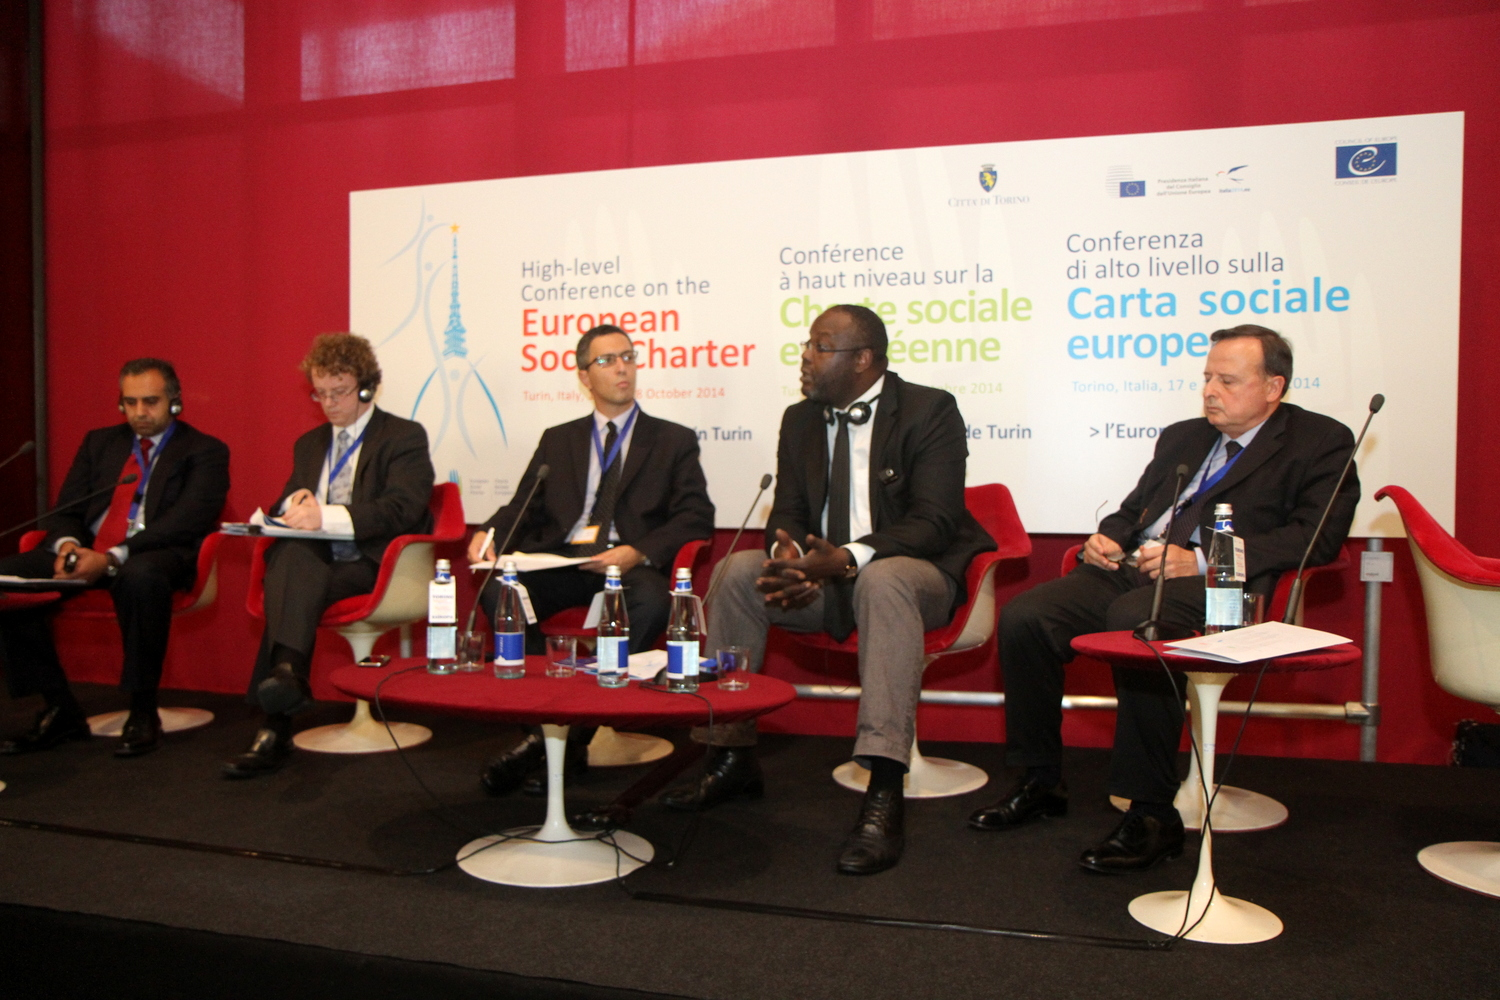 10. High-level Conference on the European Social Charter (Turin, 17-18 October 2014).jpg